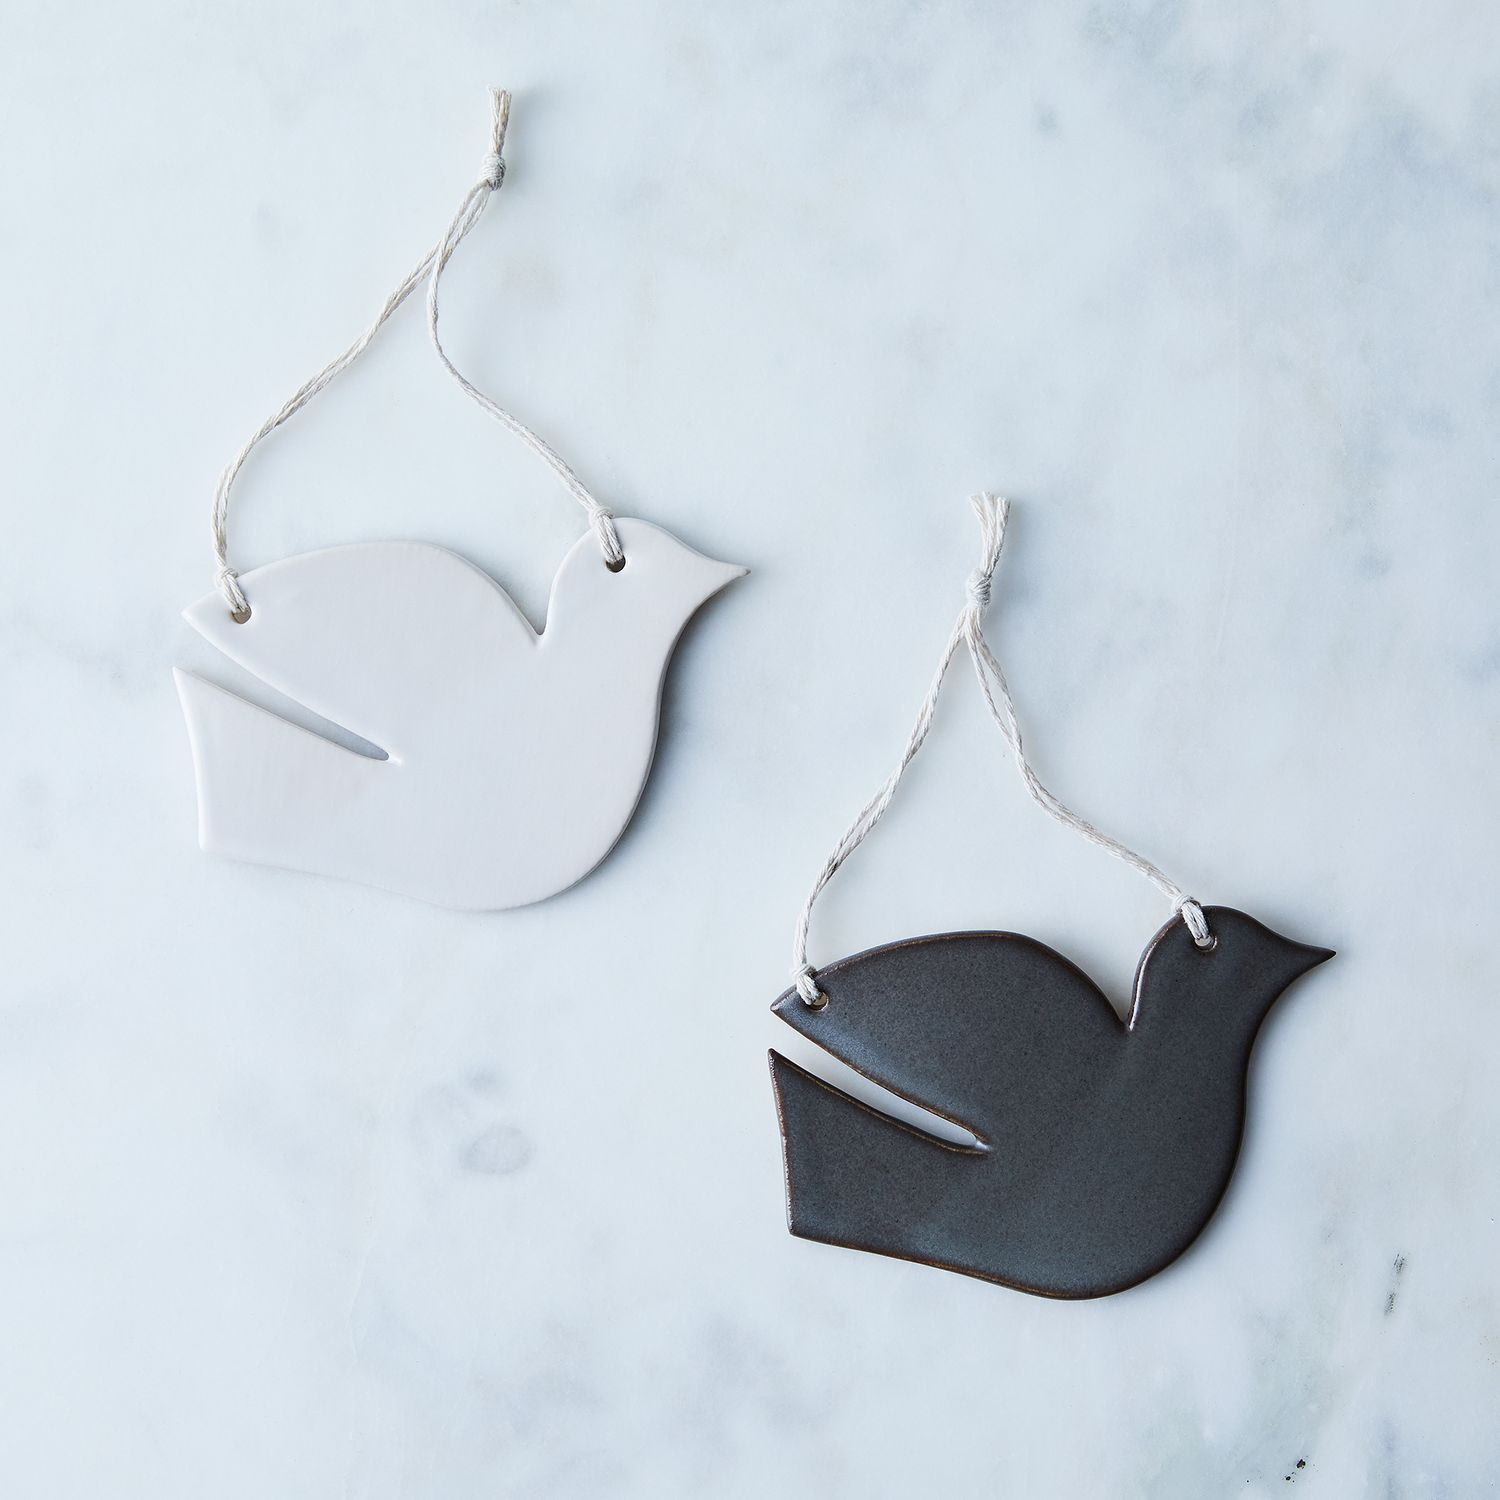 Handmade Ceramic Dove Ornament On Food52